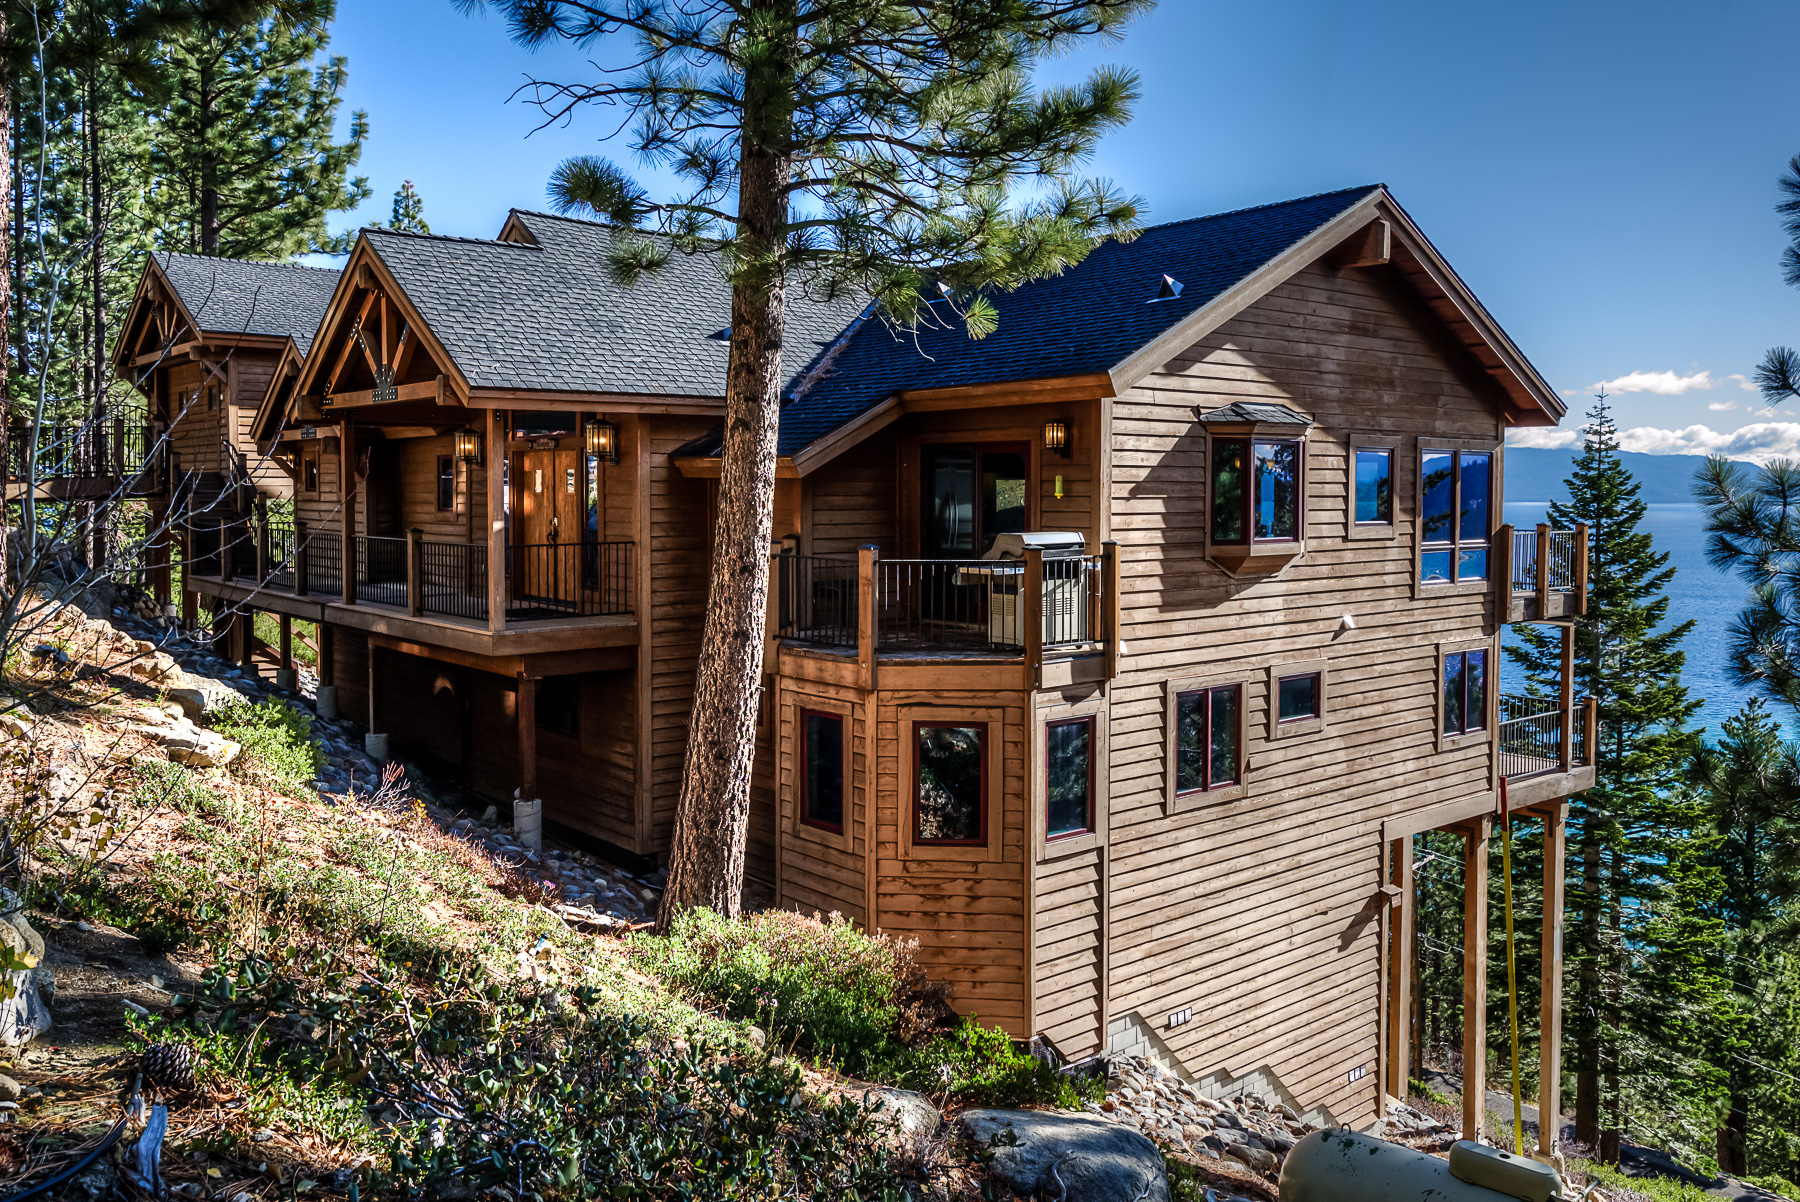 Unforgettable lake tahoe cabin ra88784 redawning for Rent a cabin in lake tahoe ca